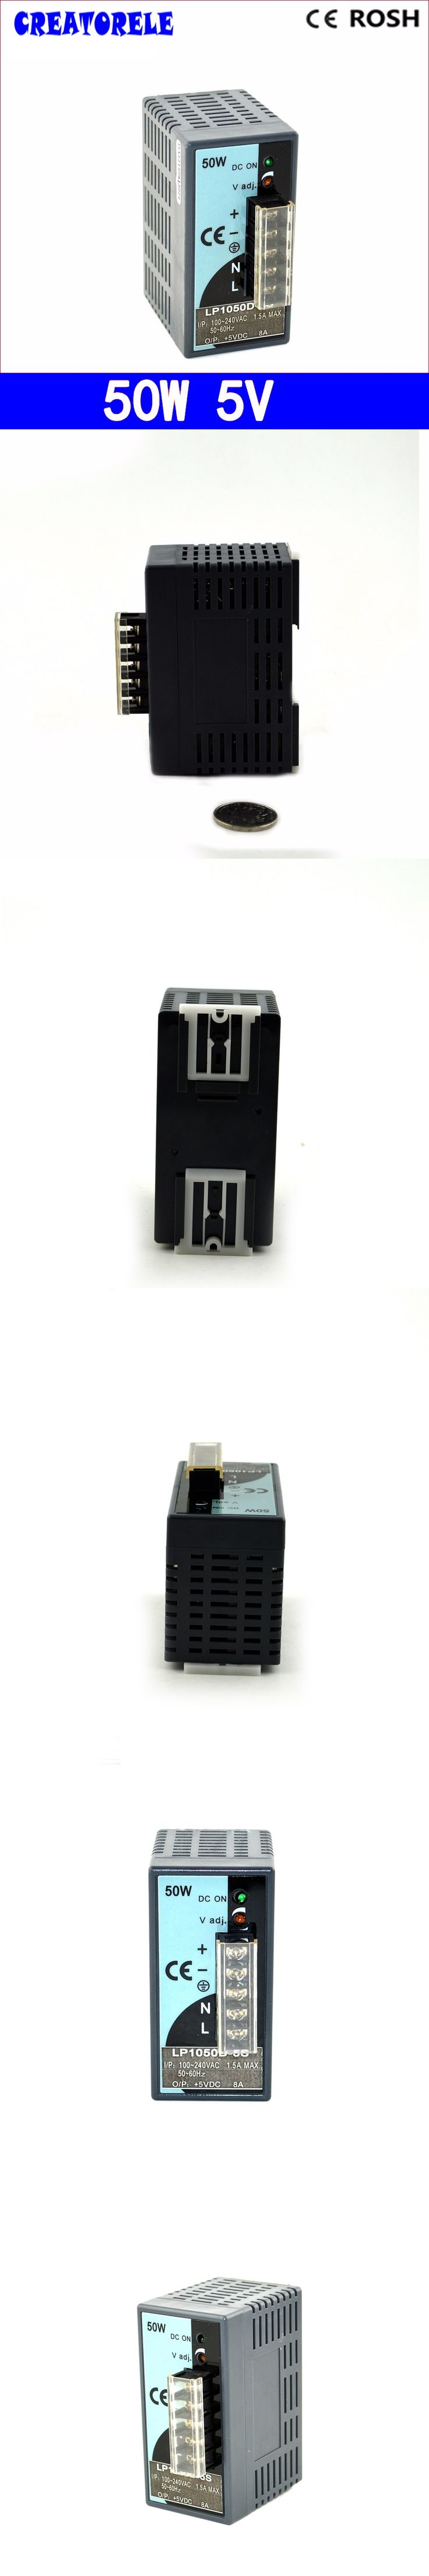 ac to dc 5V 10A 50W Mini size Transformer -Strip Iight Ied driver source swtching pwer supIy voIt